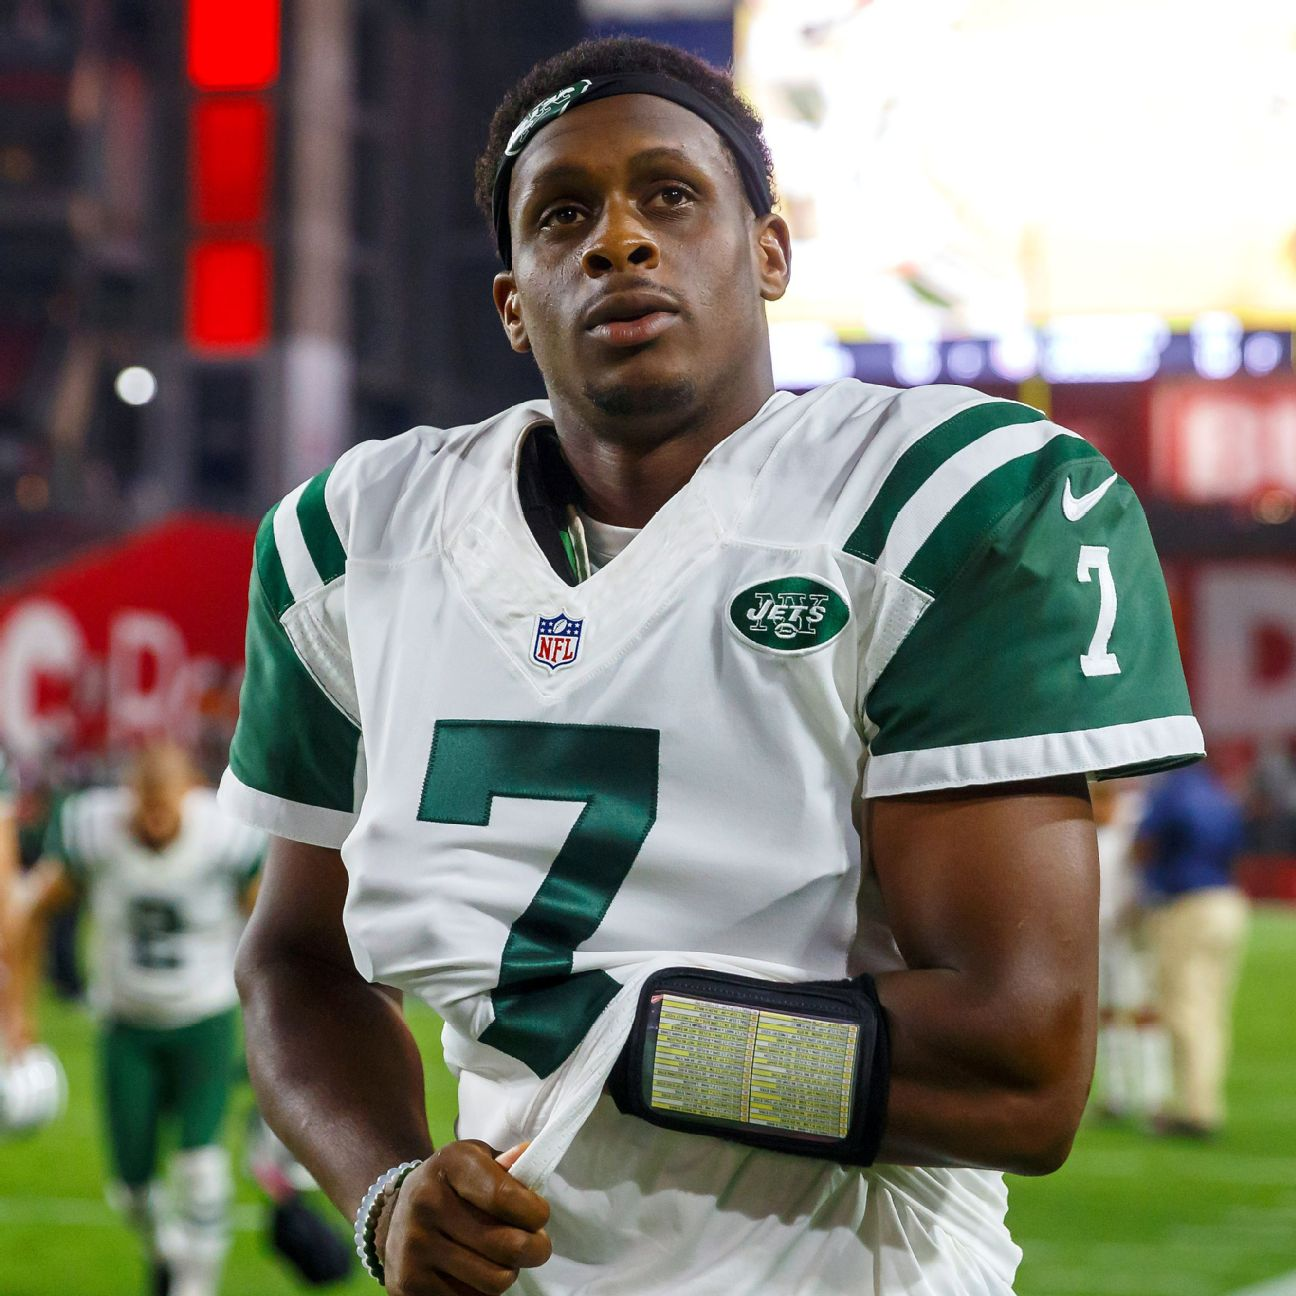 Jason Pierre Paul Signs One Year Deal With Giants: QB Geno Smith Expected To Sign With New York Giants